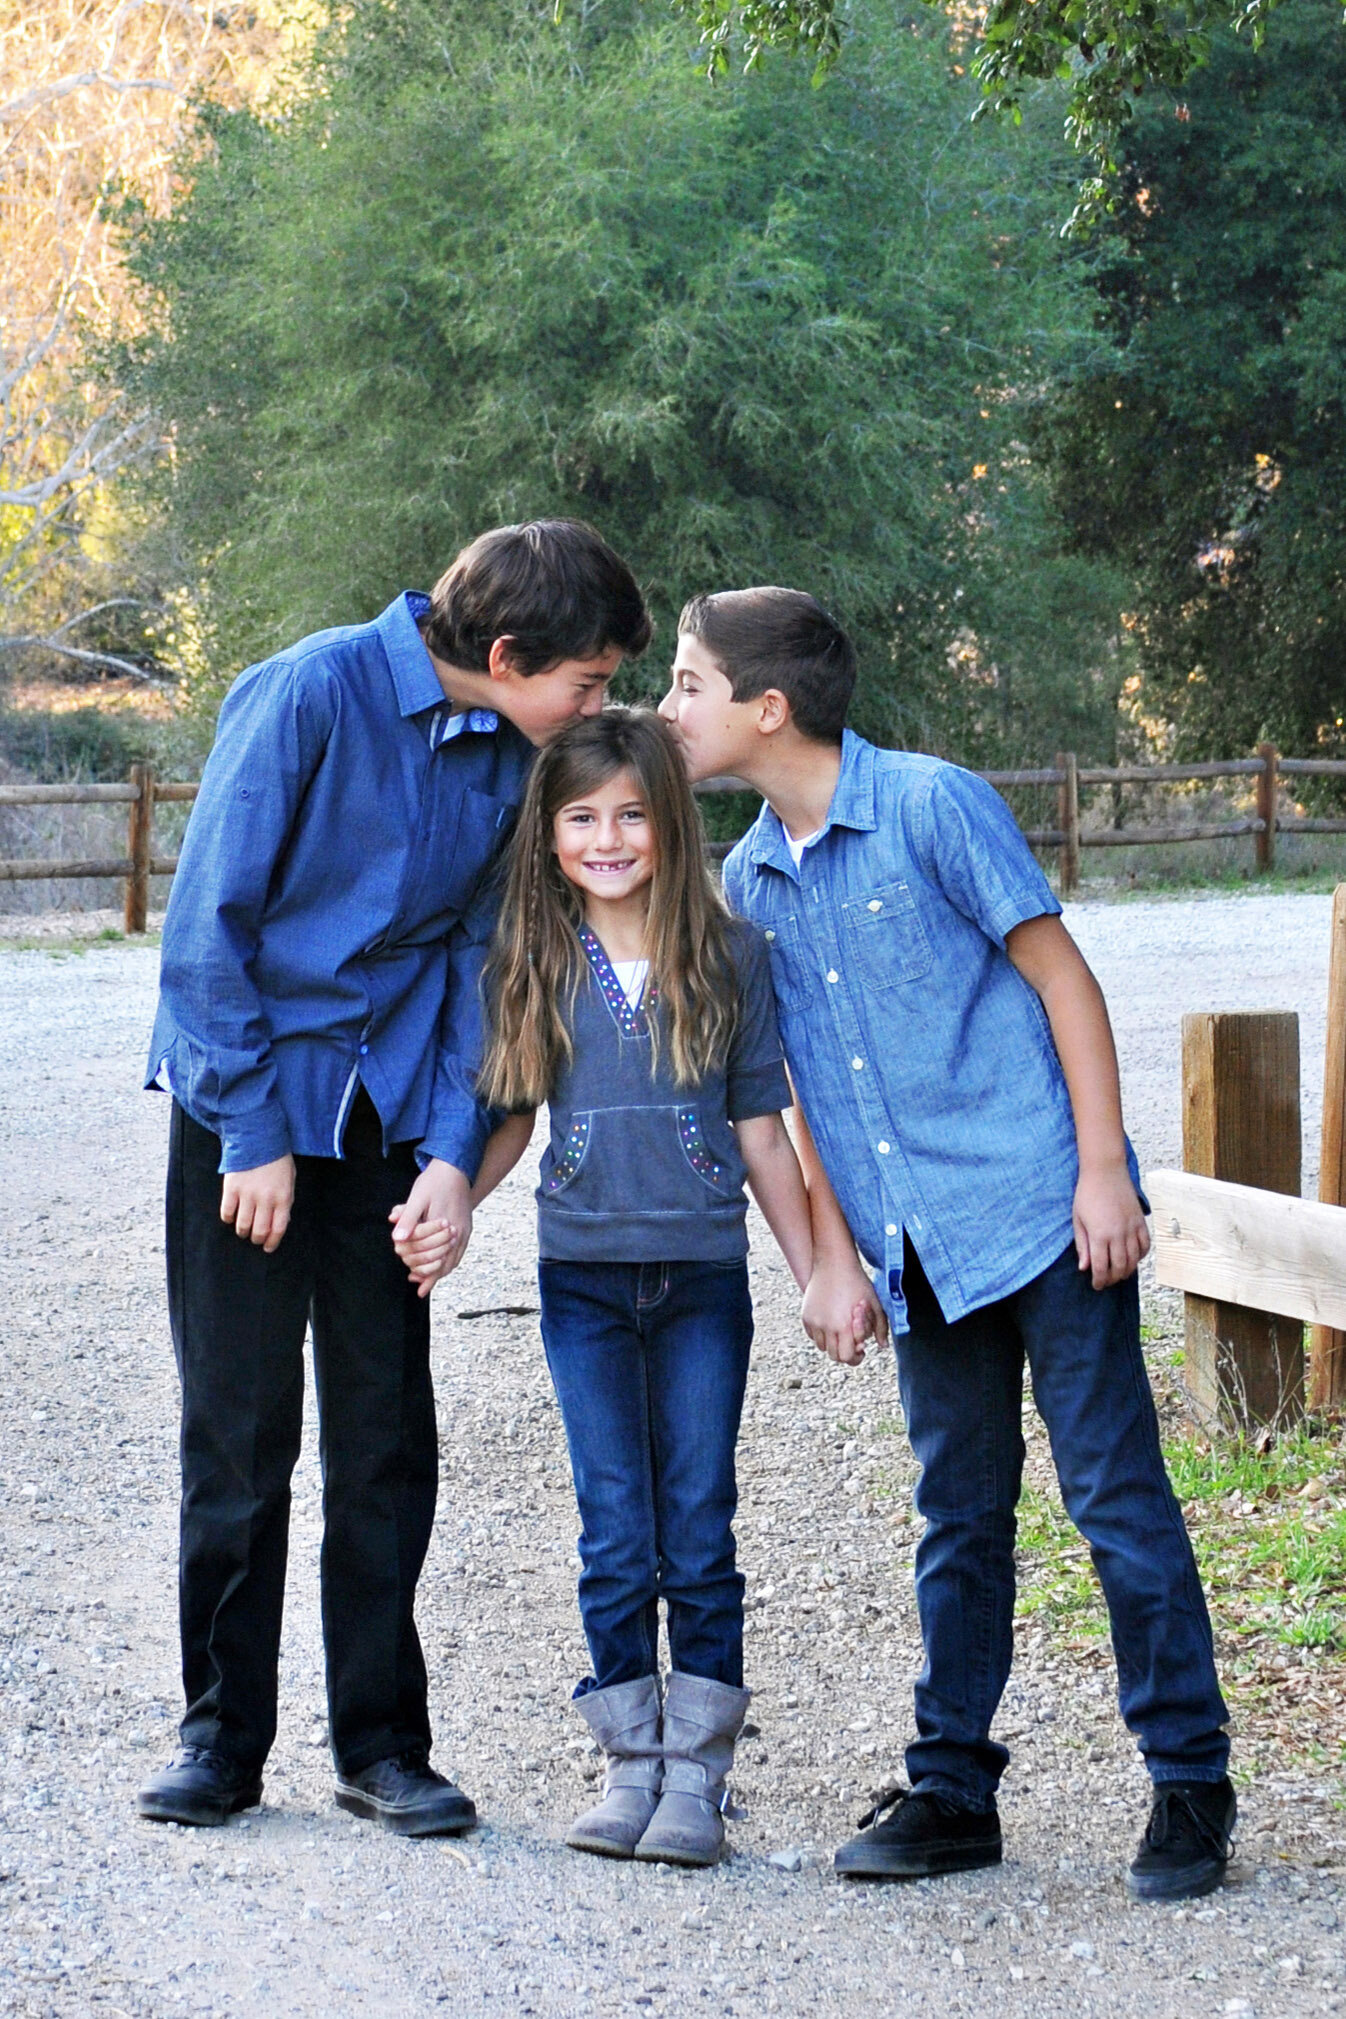 Maria-McCarthy-Photography-siblings-affection